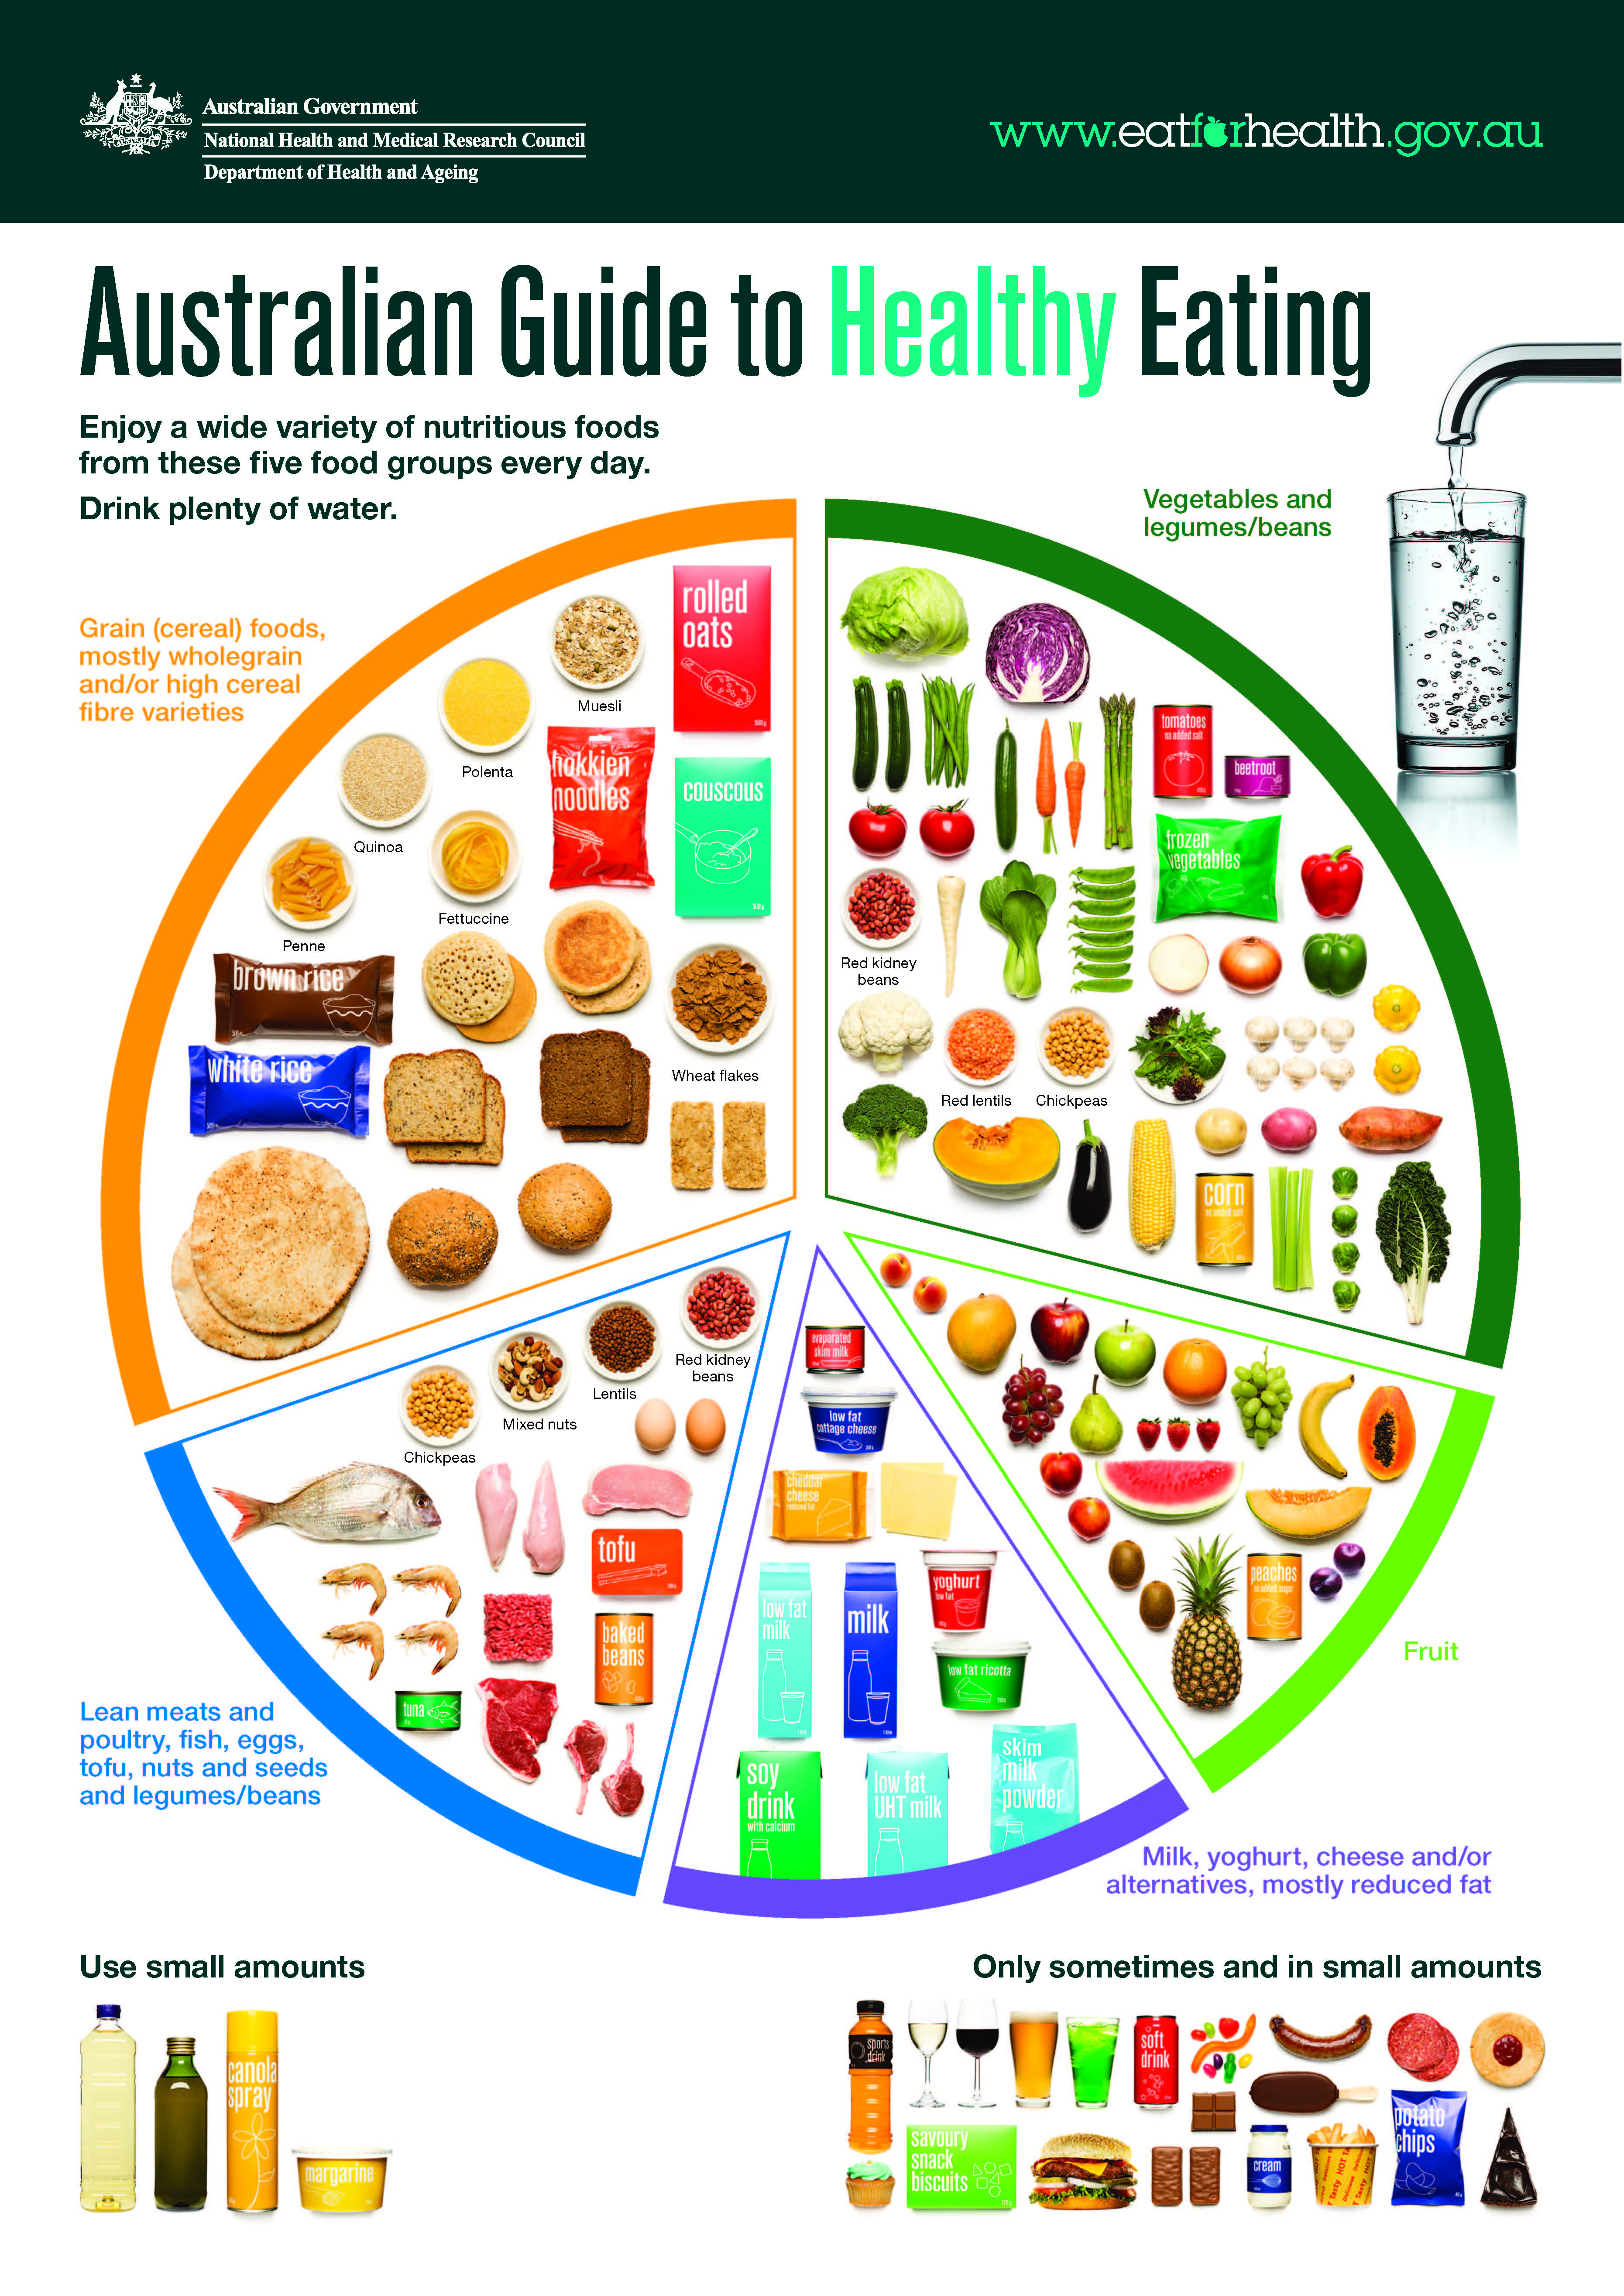 Circular diagram broken into sections showing healthy food group and sometimes foods. The Australian Government Australian Dietary Guidelines website provide full details.